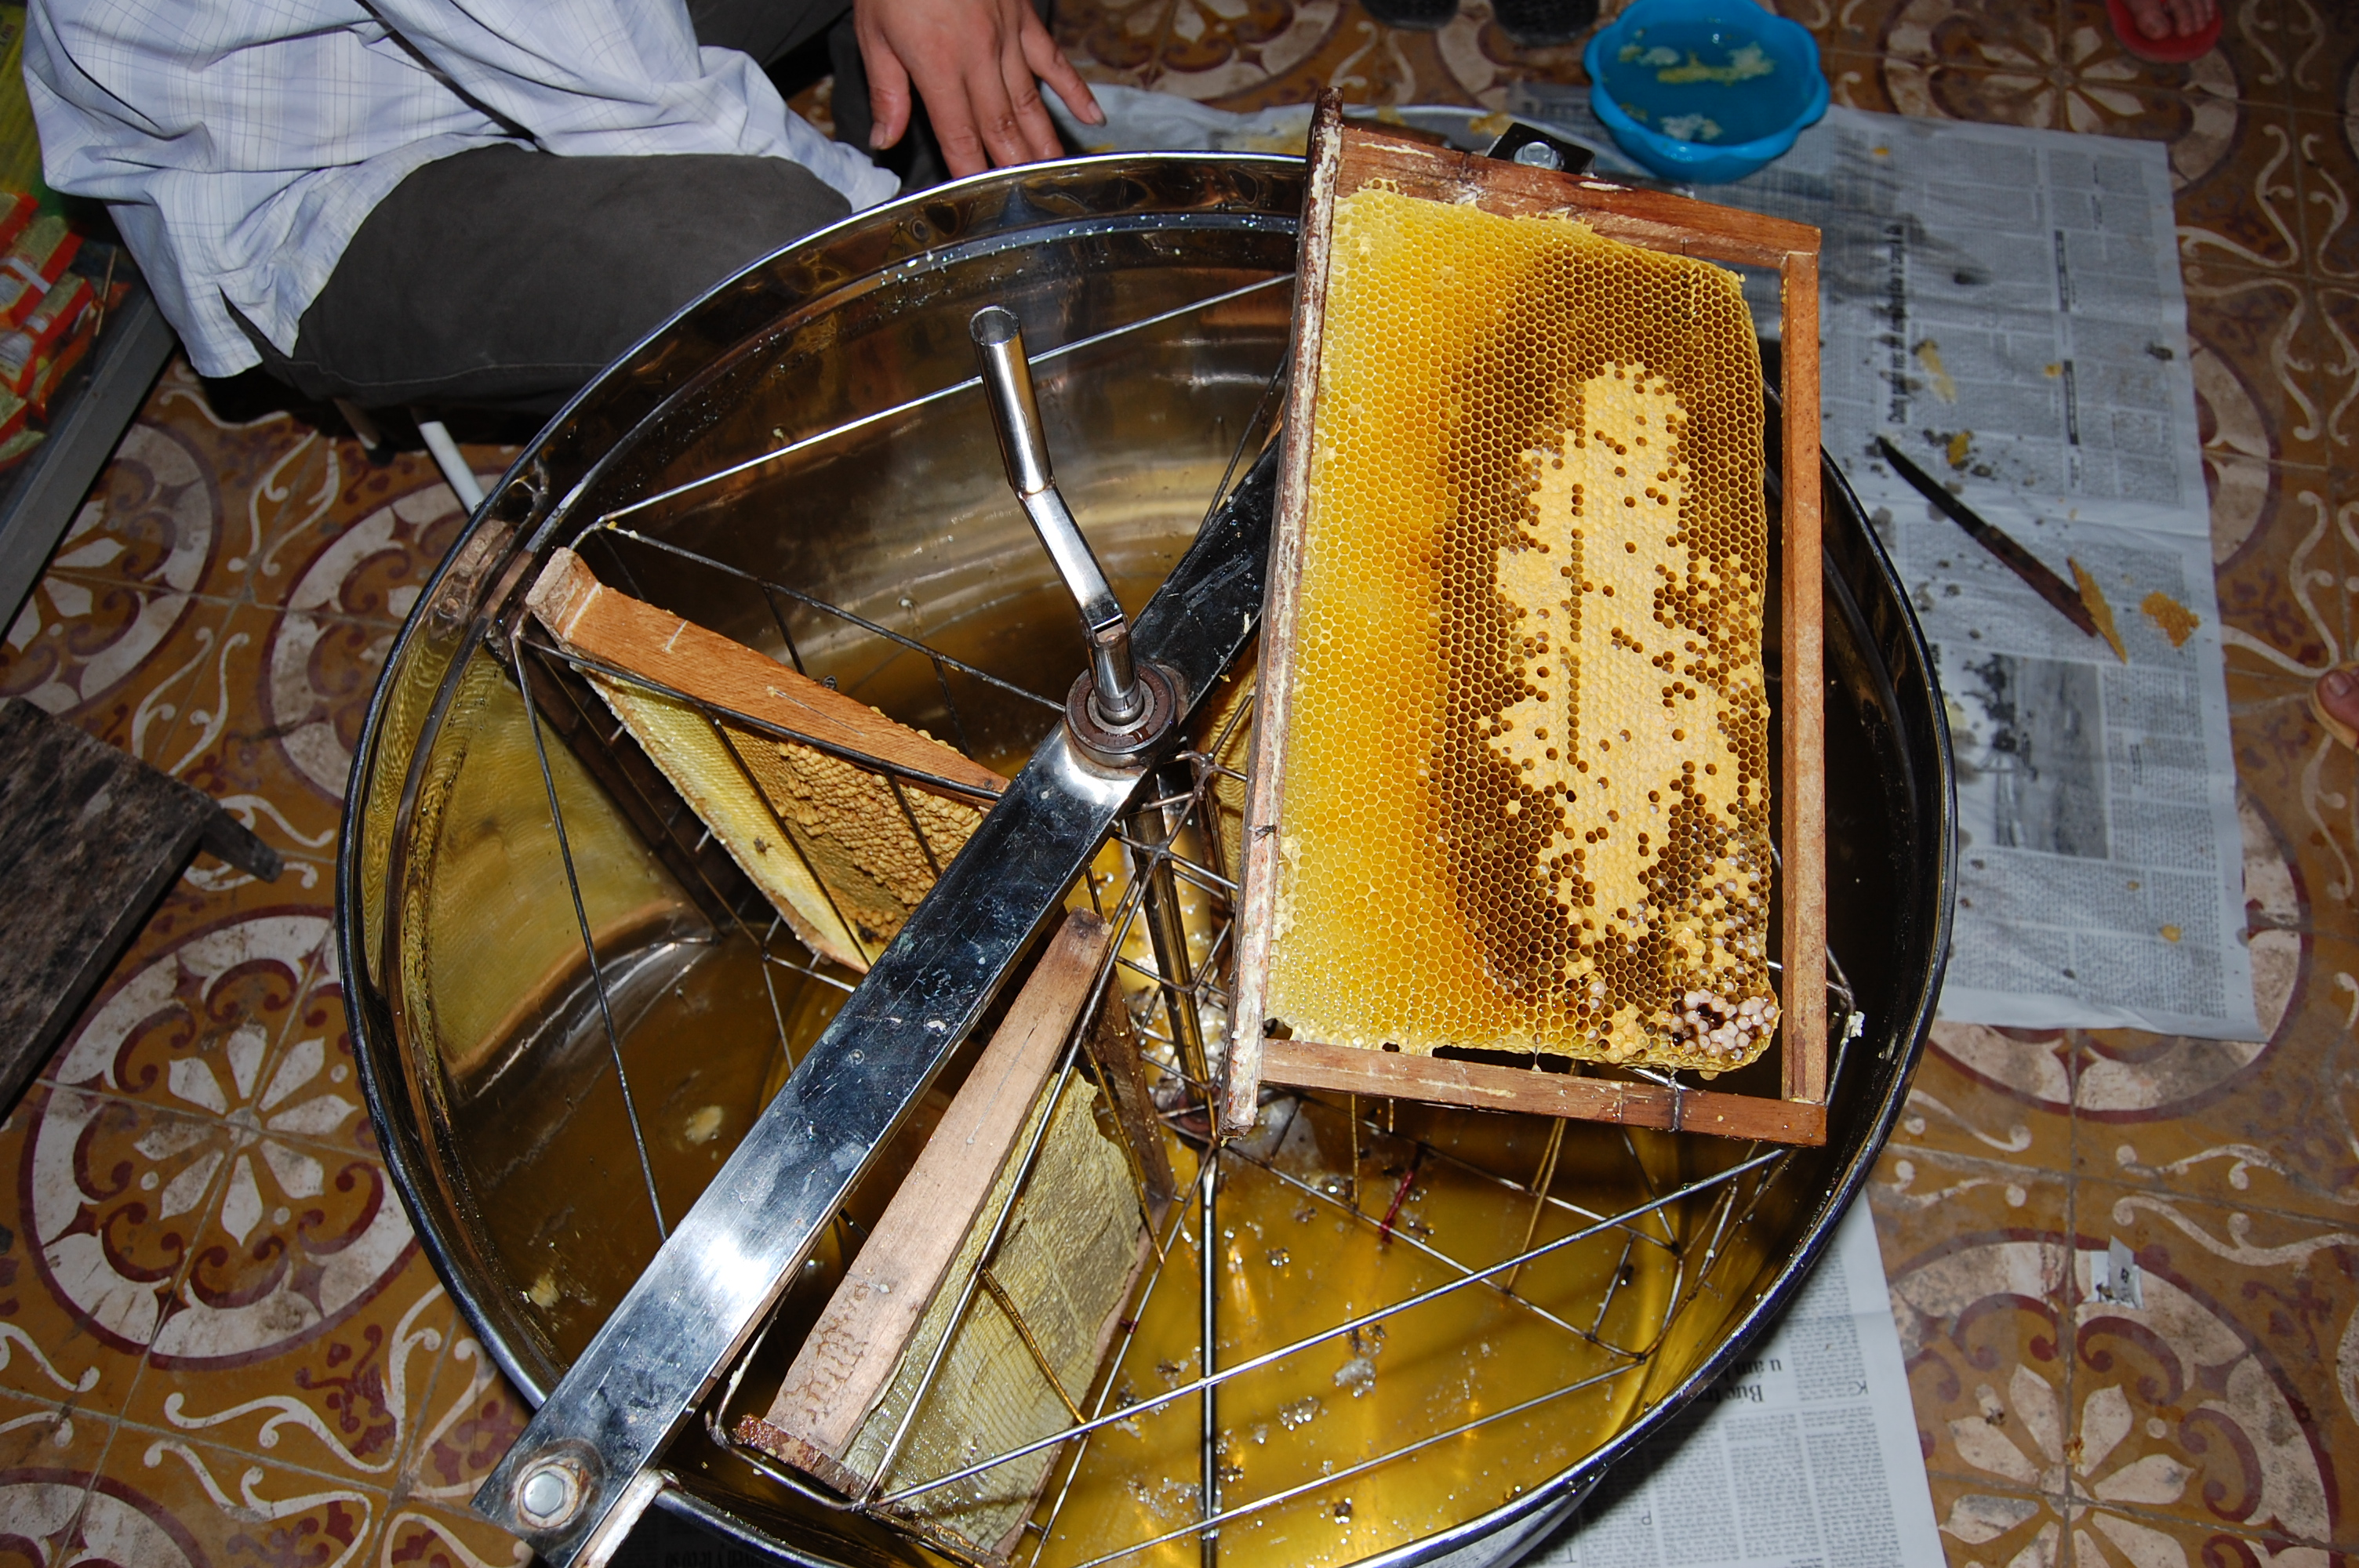 To extract some honey! Which is really sweet.